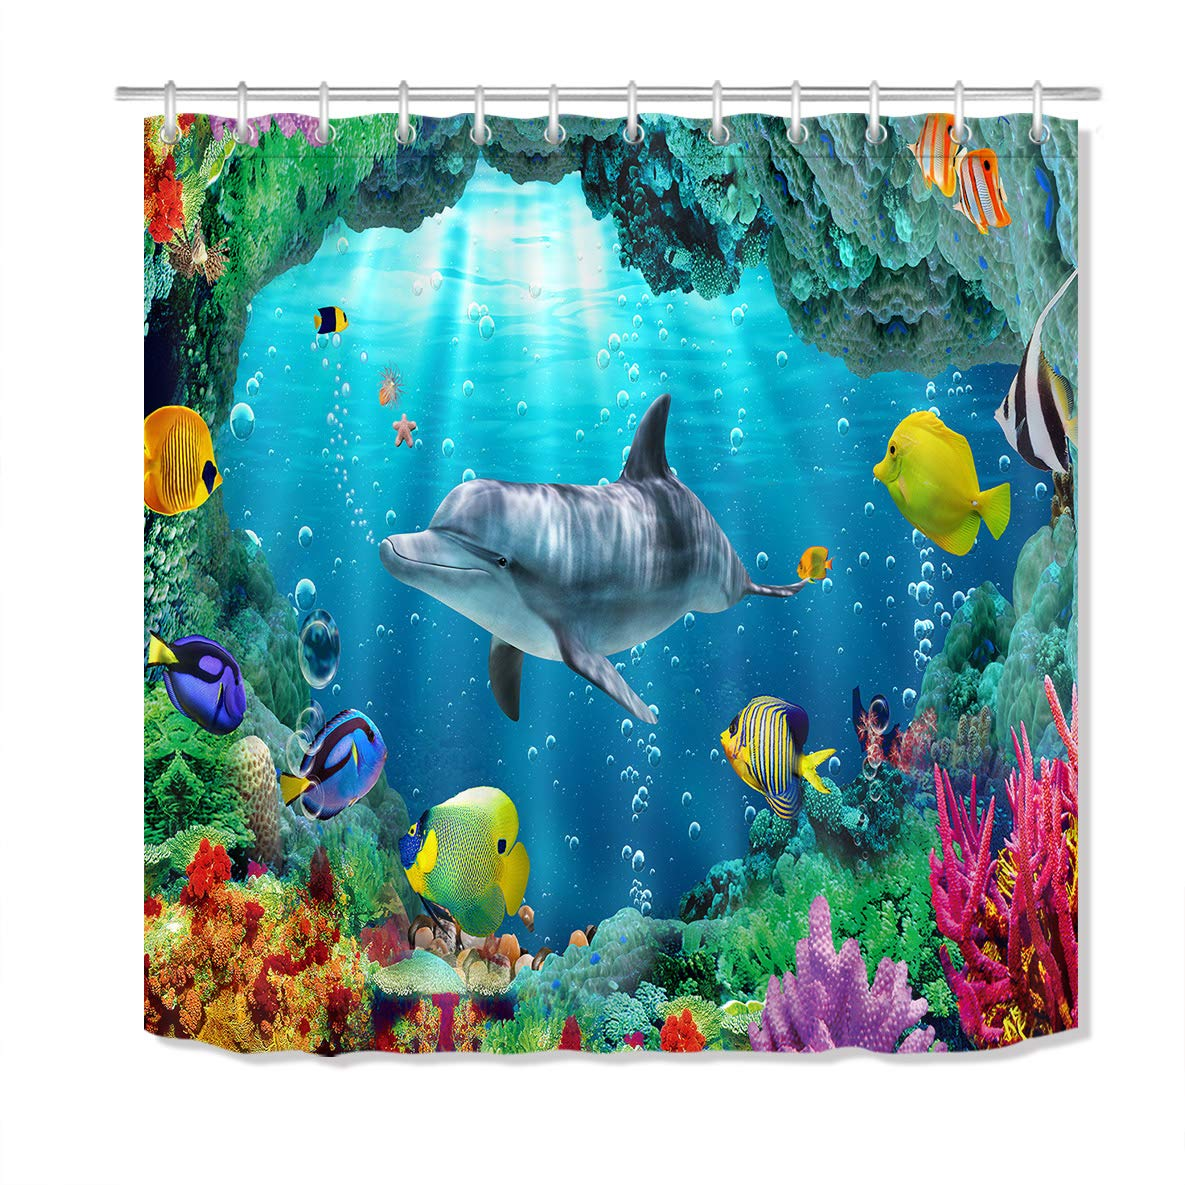 LB Underwater Dolphin Shower Curtain Blue Ocean Sea Kids Bathroom Curtain Fish Coral Reef Decoration Hooks Include Waterproof Polyester Fabric 72x72 inch